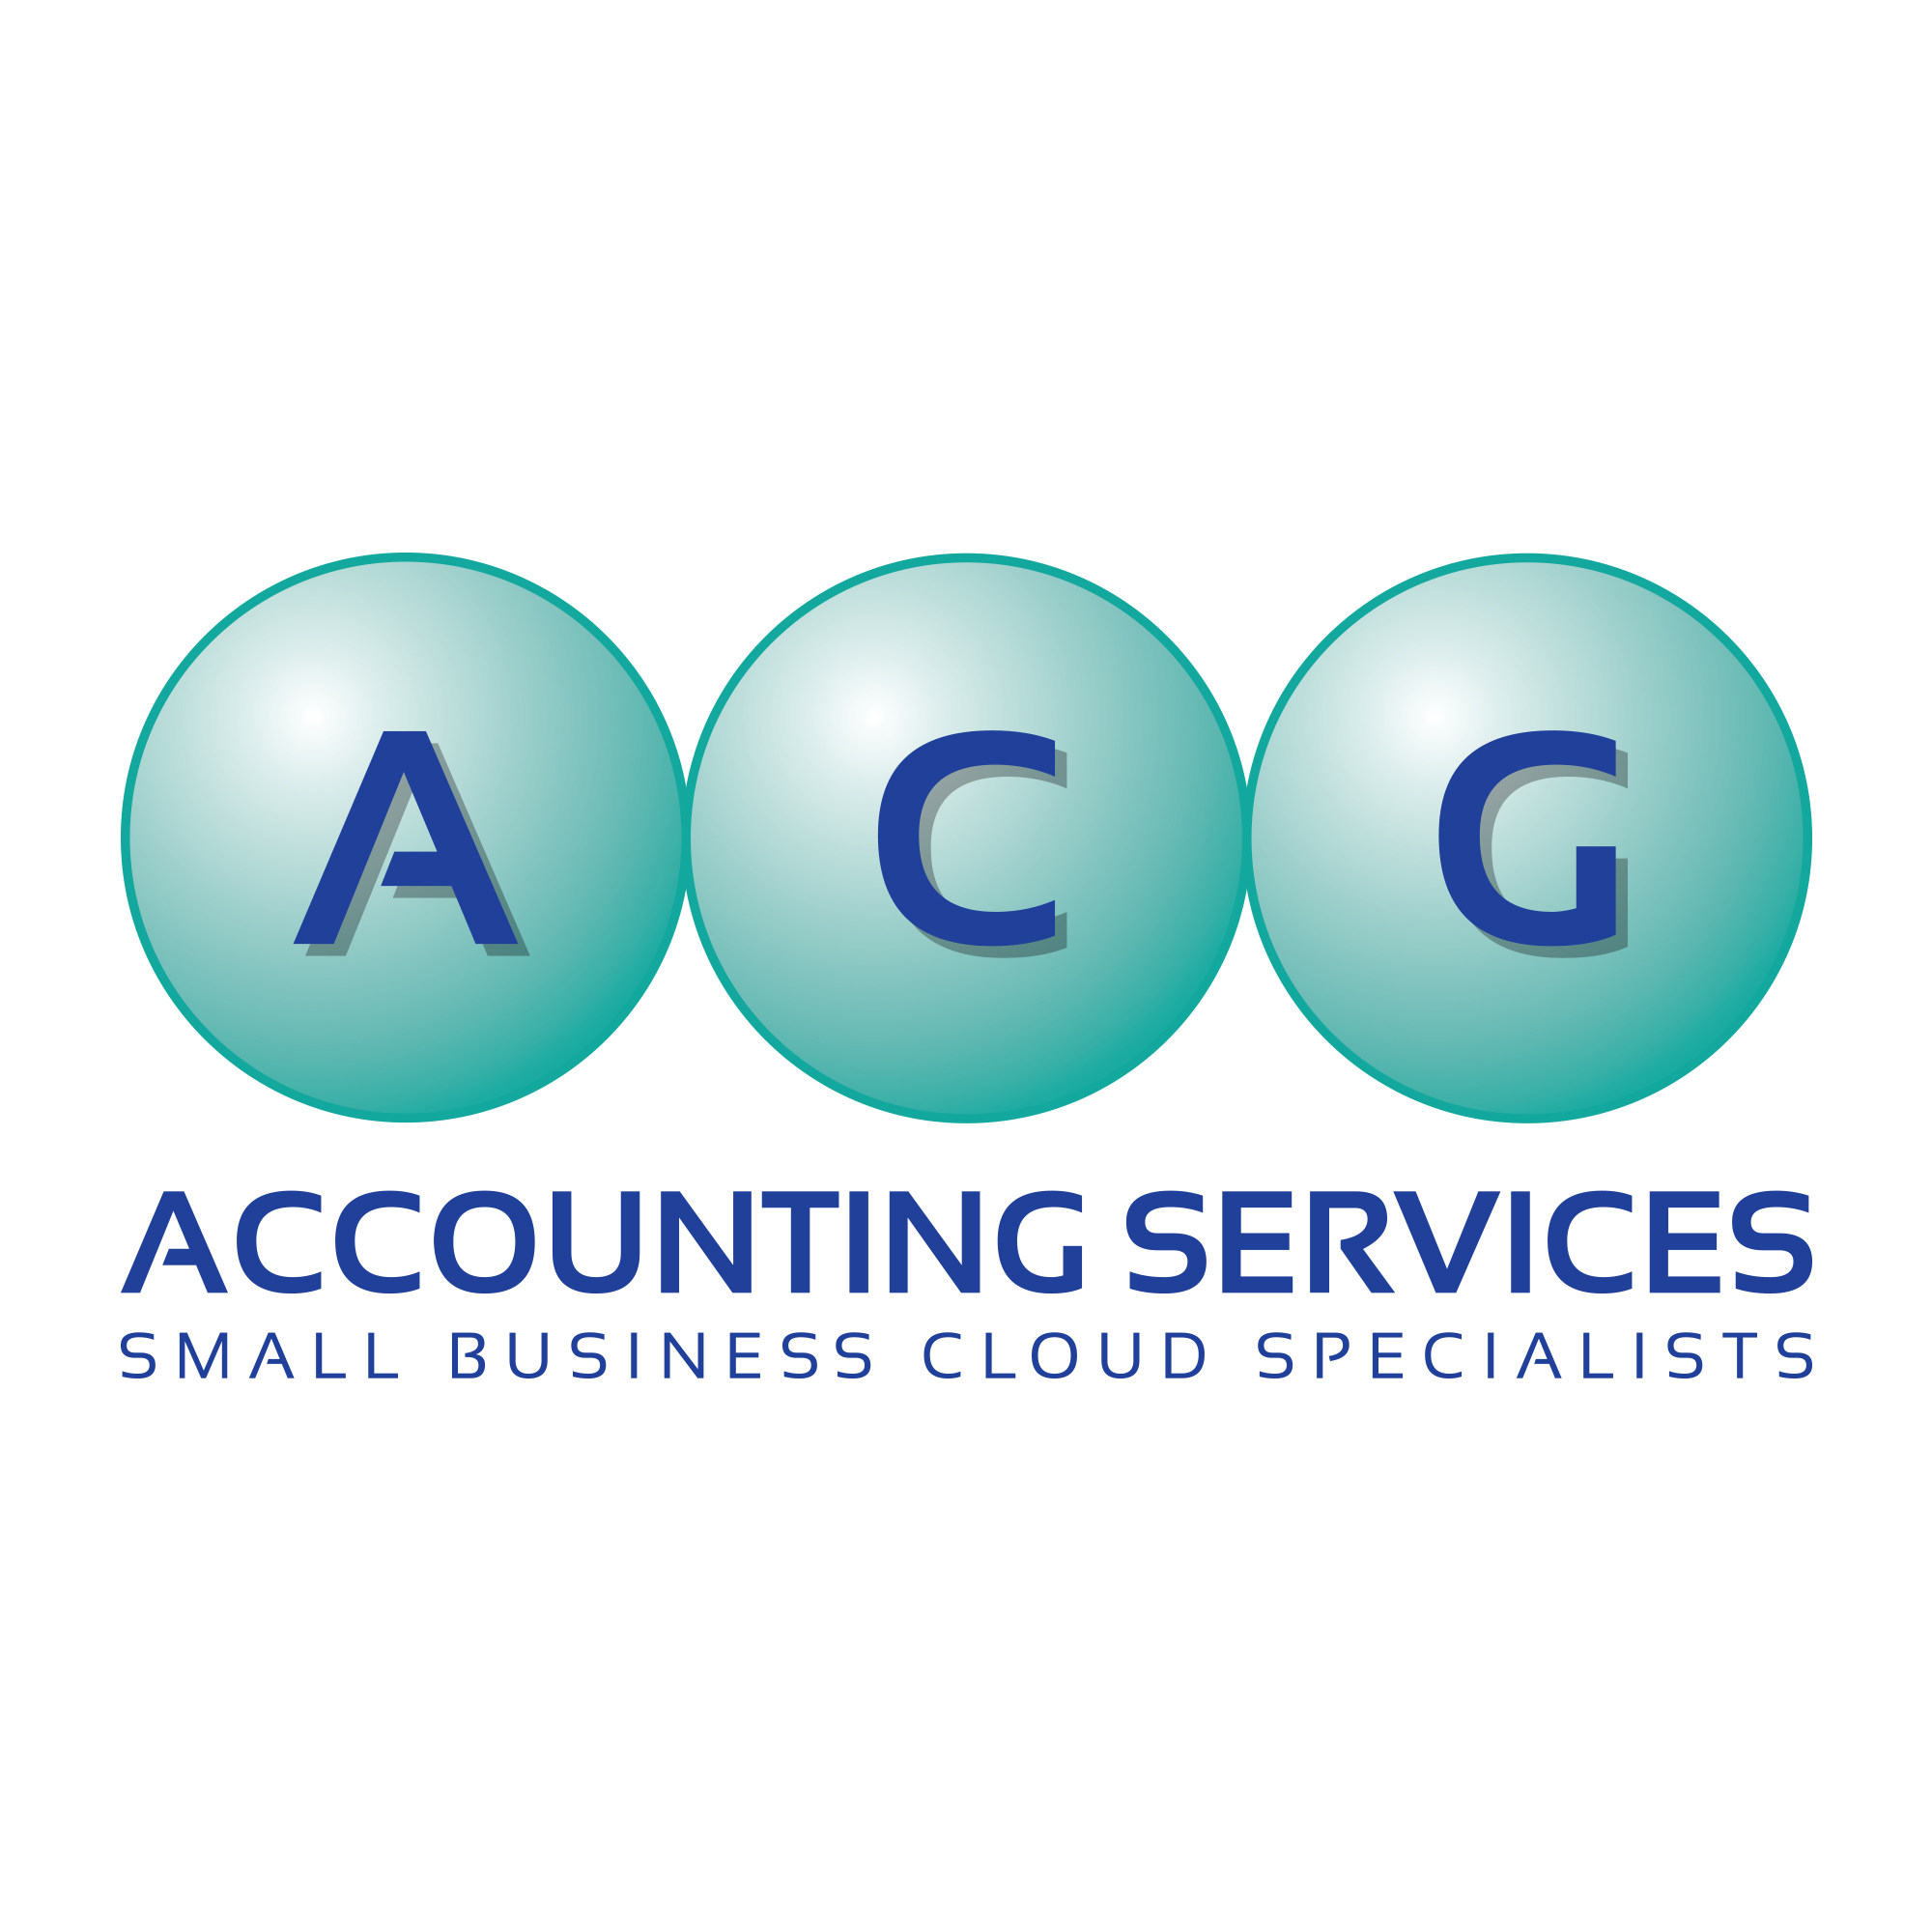 ACG Accounting Services - Blairgowrie, Perthshire PH10 6TS - 01250 871097 | ShowMeLocal.com